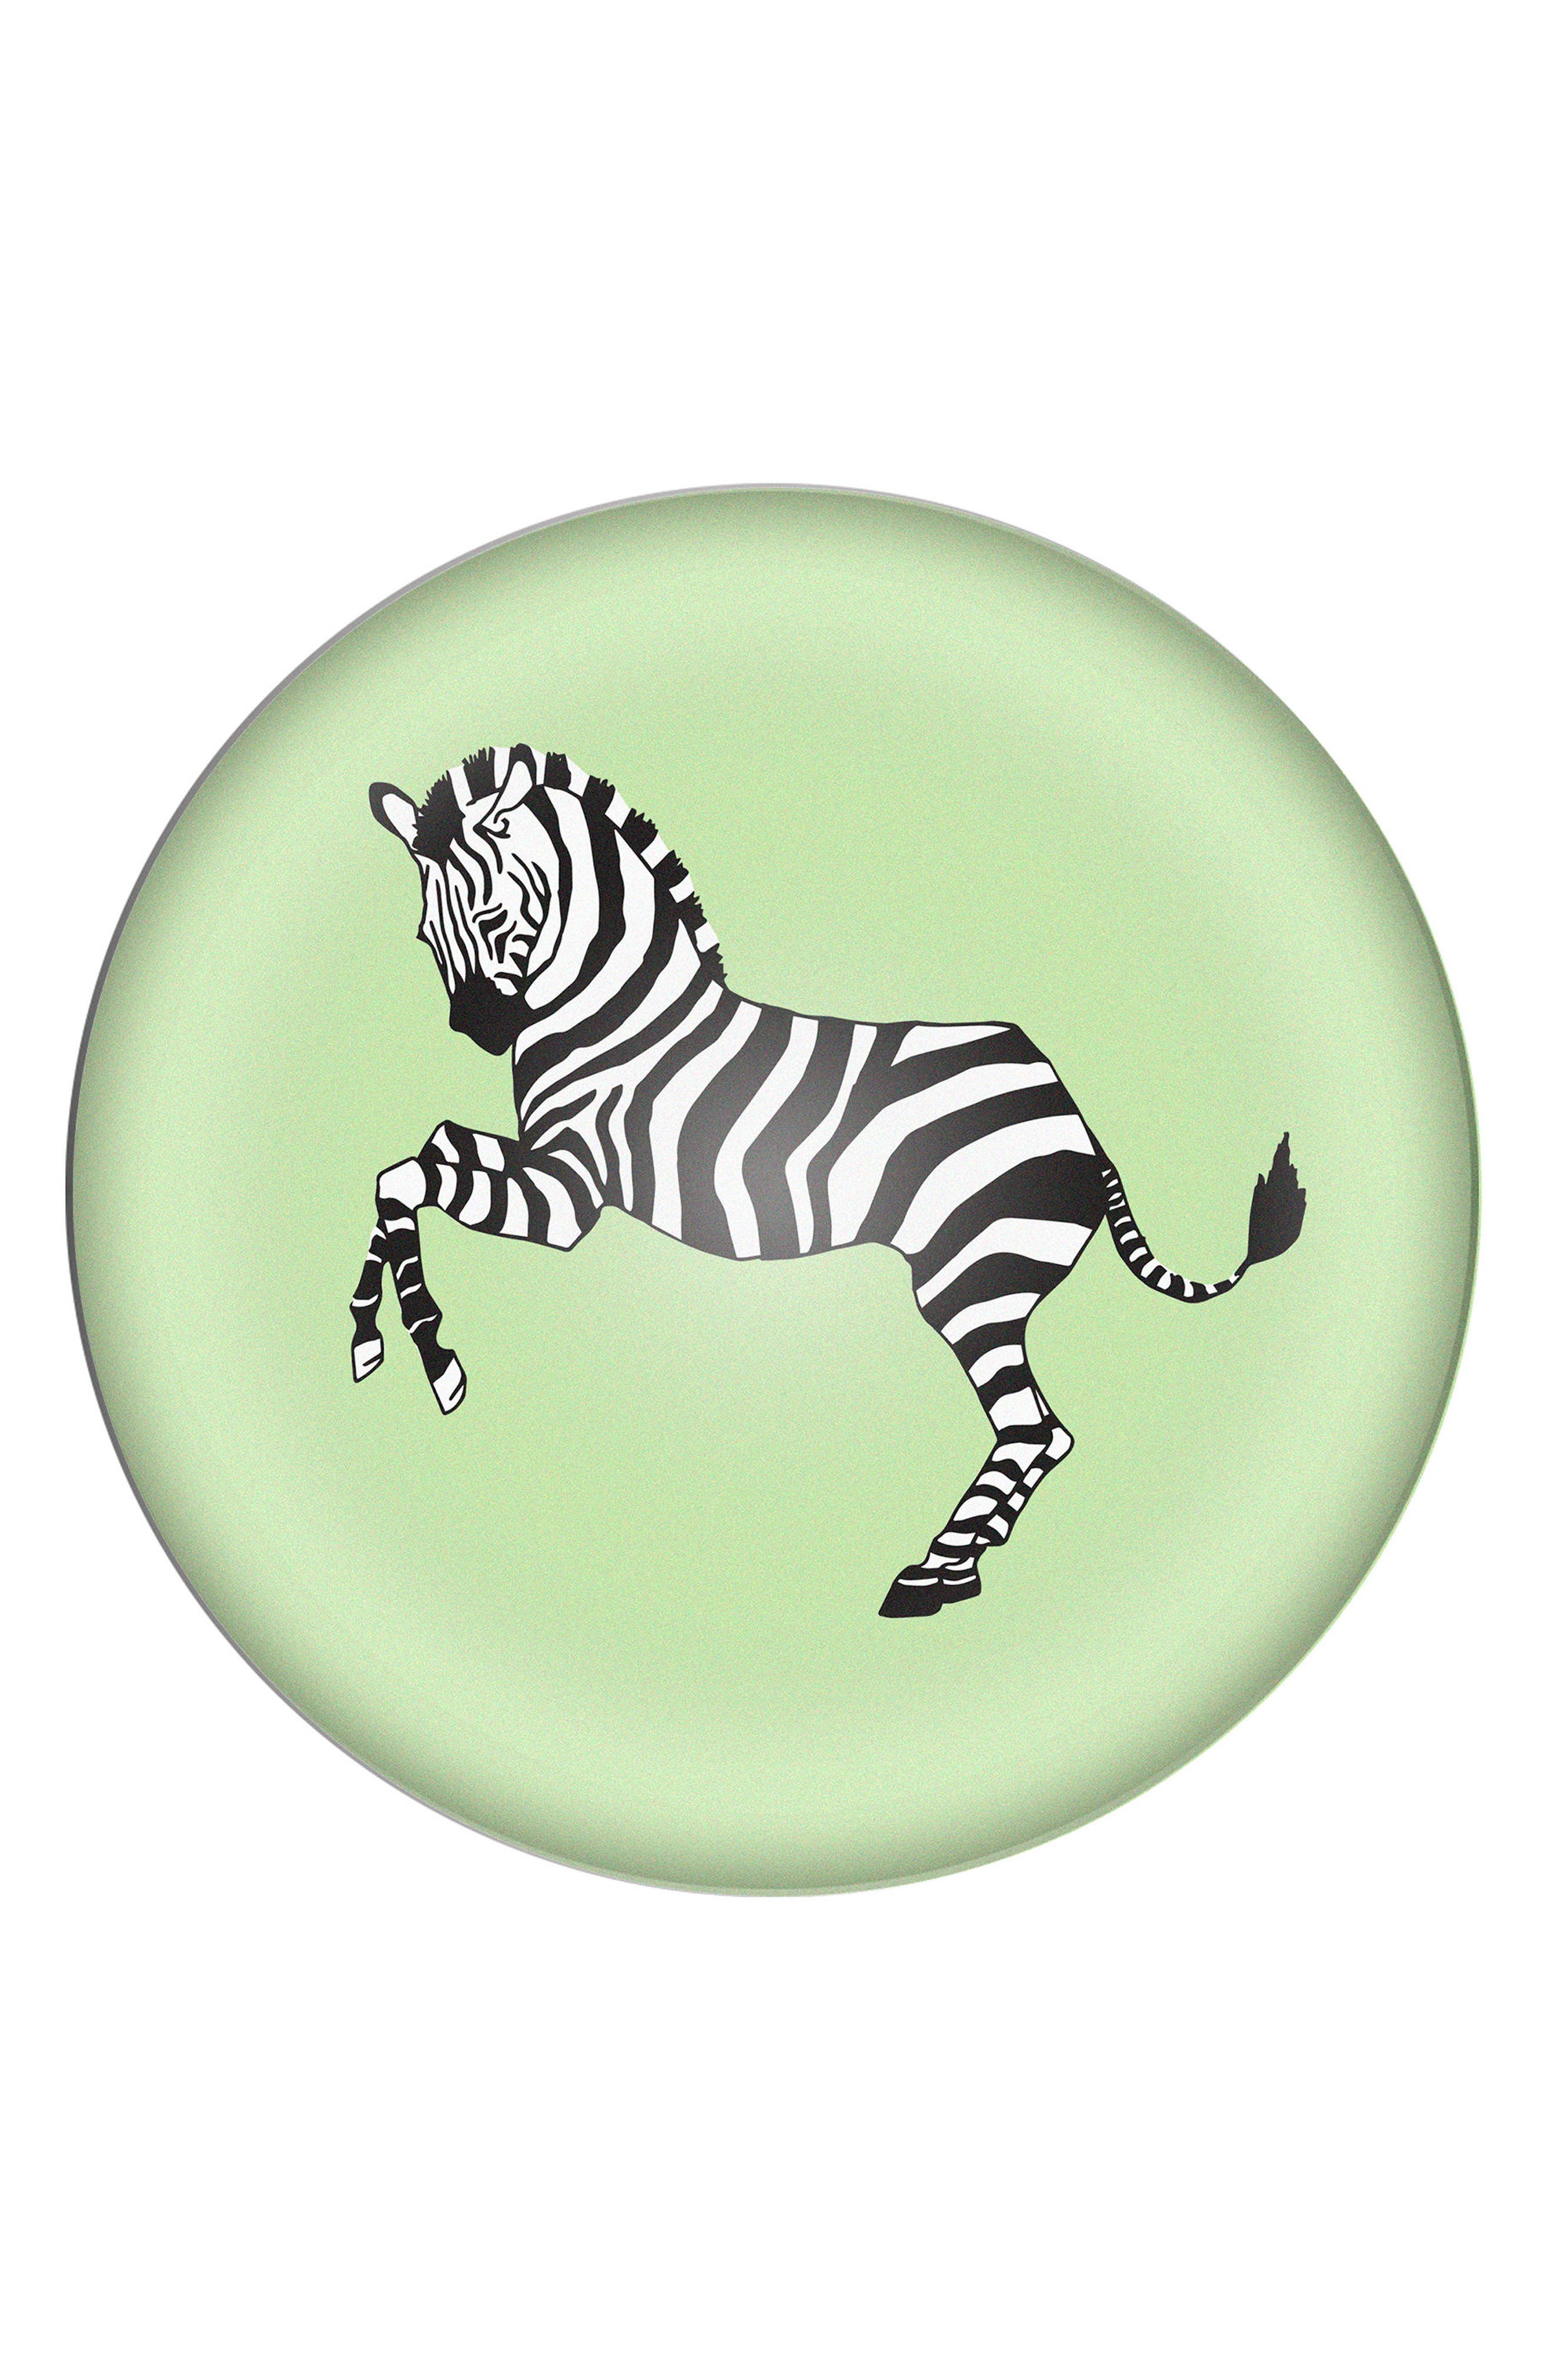 Zebra Domed Glass Paperweight,                             Main thumbnail 1, color,                             300